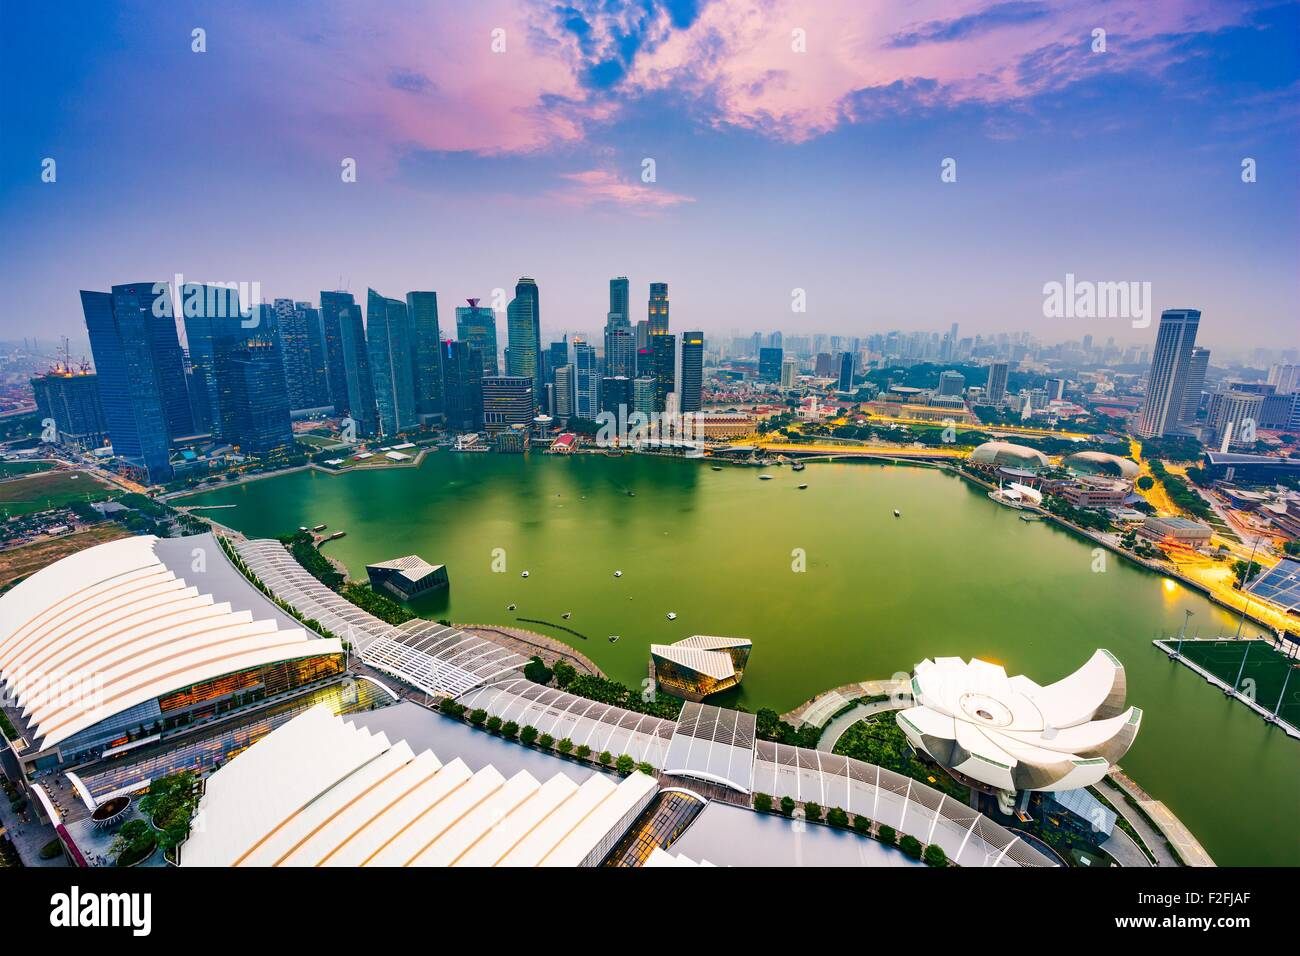 Marina Bay, Singapore aerial skyline. - Stock Image